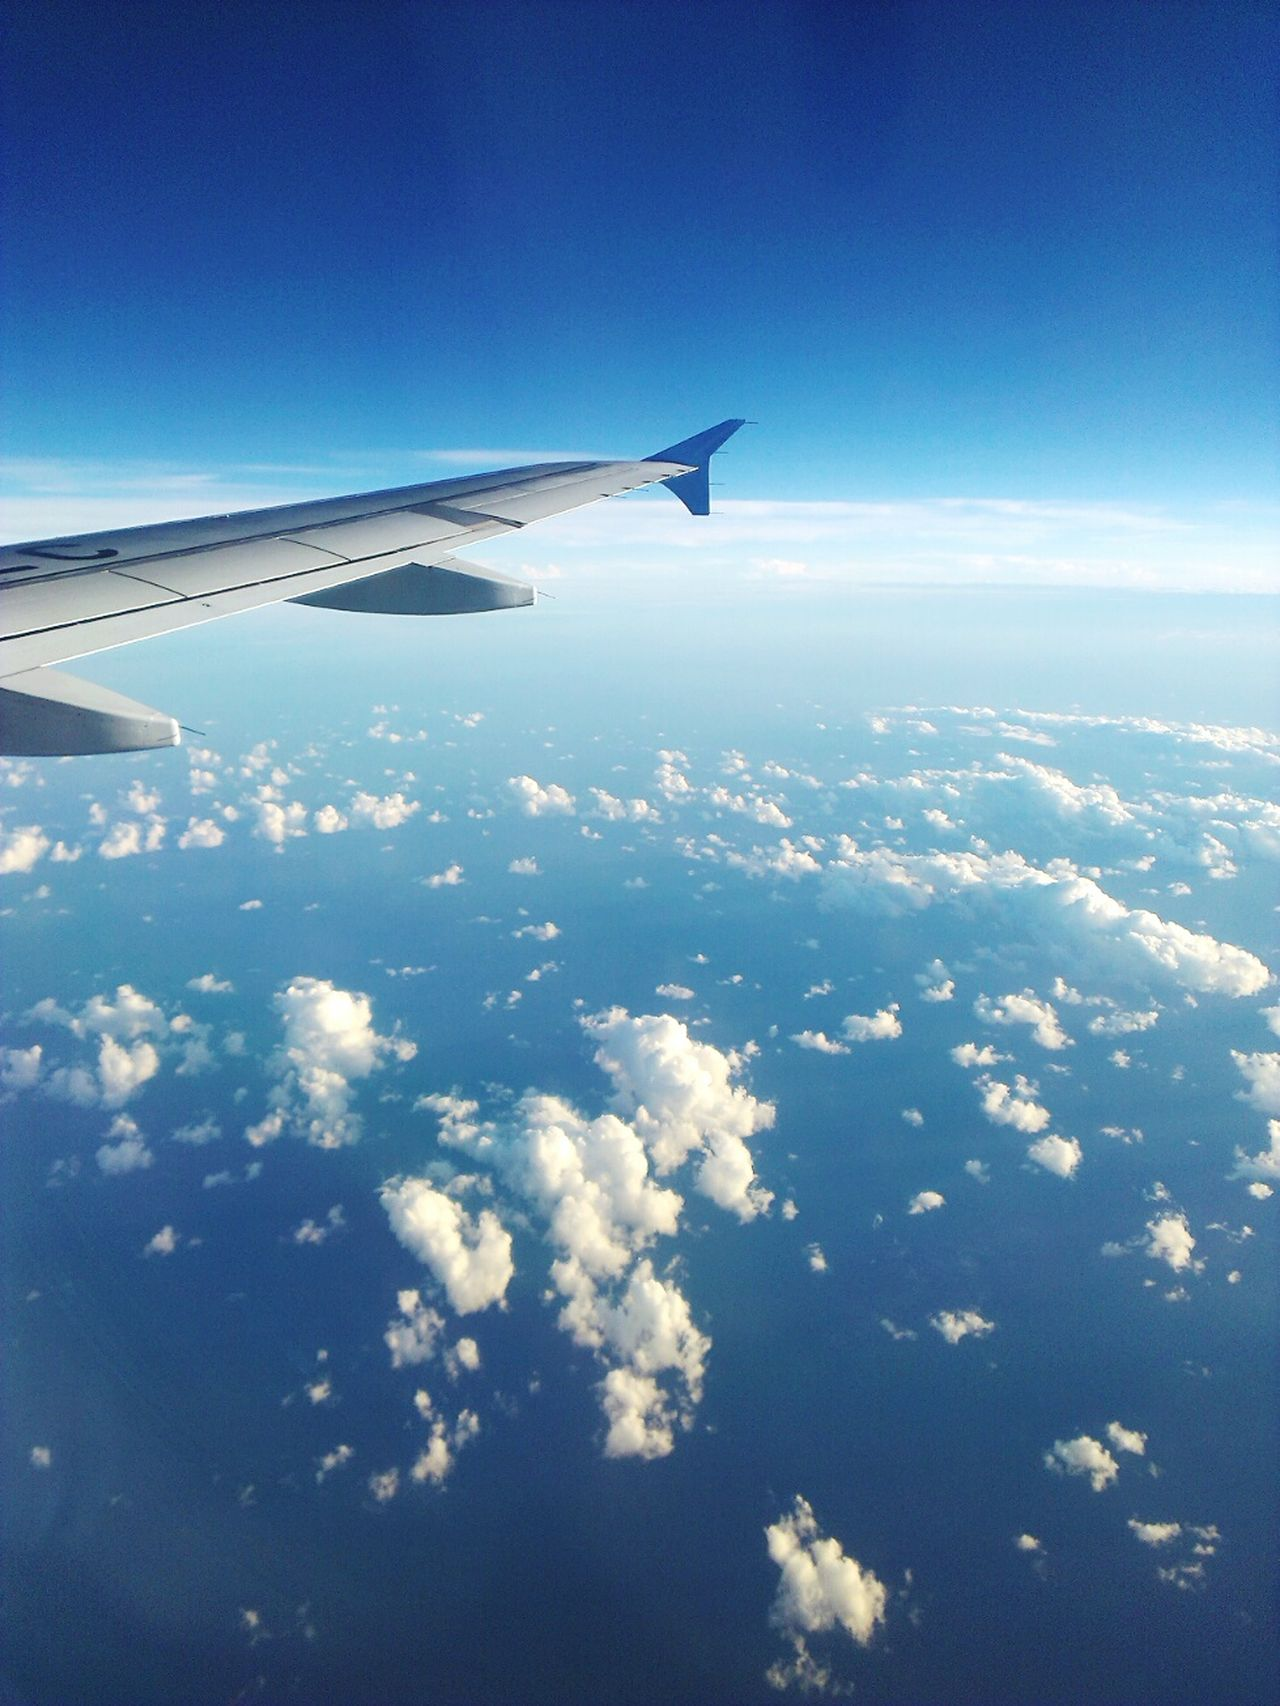 Plane Journey Commercial Airplane Transportation Travel Cloudscape Outdoors Day Airplane Wing Business Finance And Industry No People Beauty In Nature Aircraft Wing Aerial View Cloud - Sky Sky Blue Flying Airplane Clouds Clouds And Sky A320 Mobile Photography